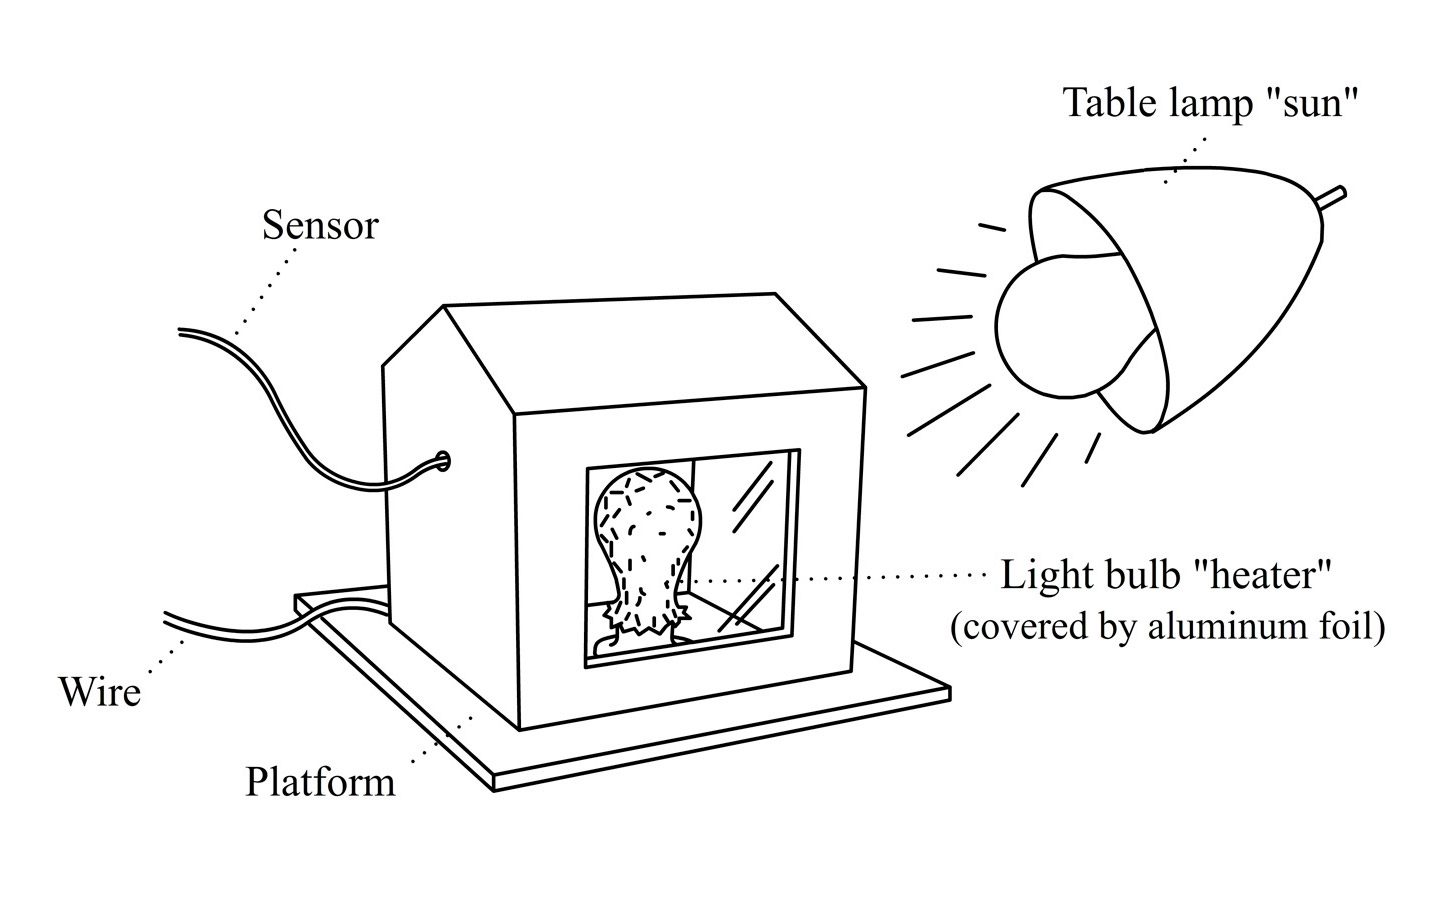 Monday S Lesson Build And Test A Model Solar House